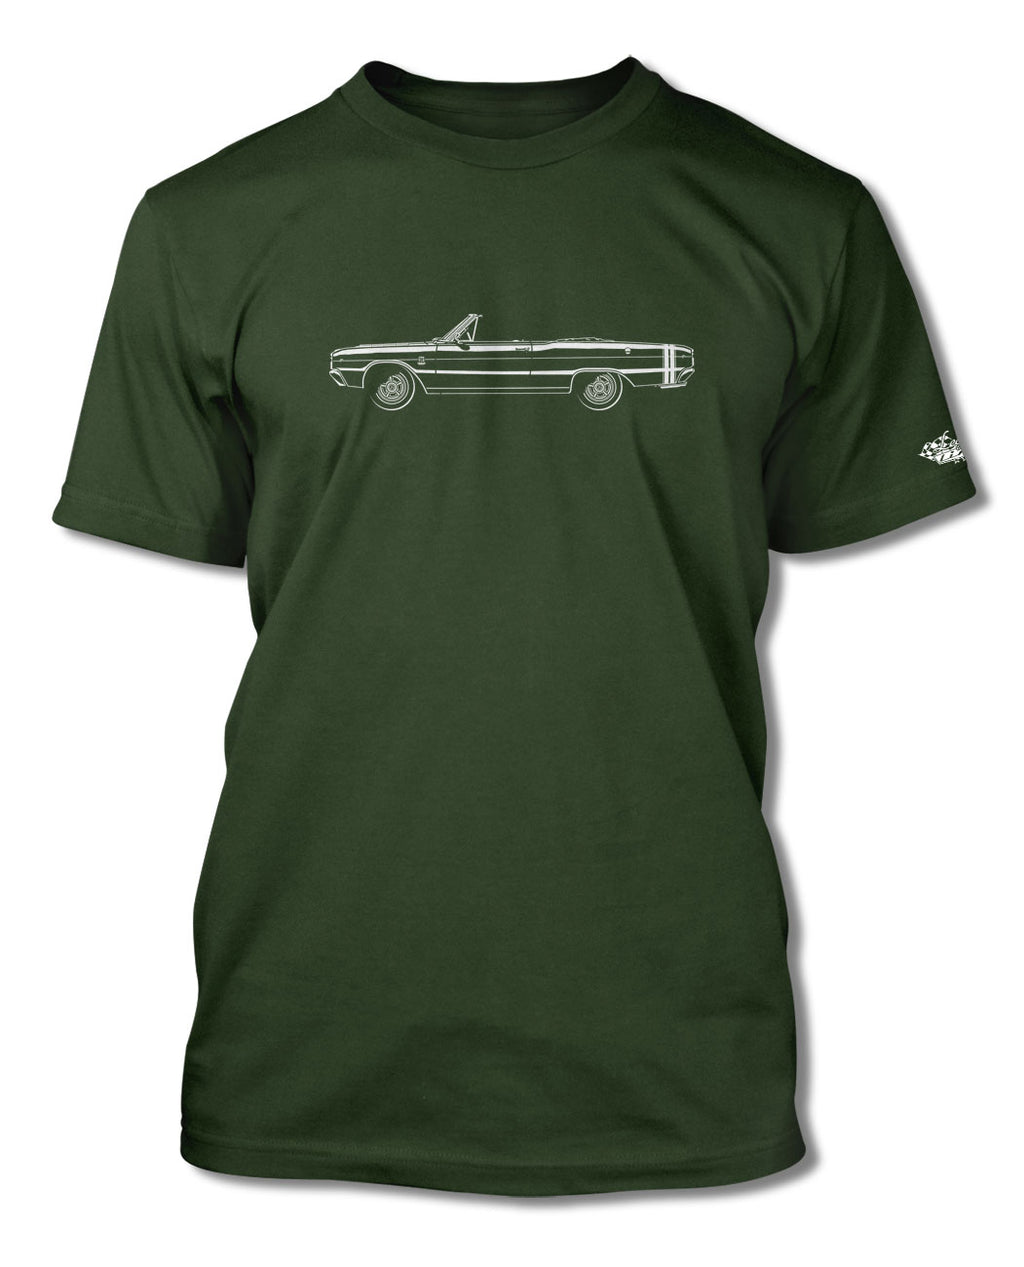 1968 Dodge Dart GTS Convertible T-Shirt - Men - Side View